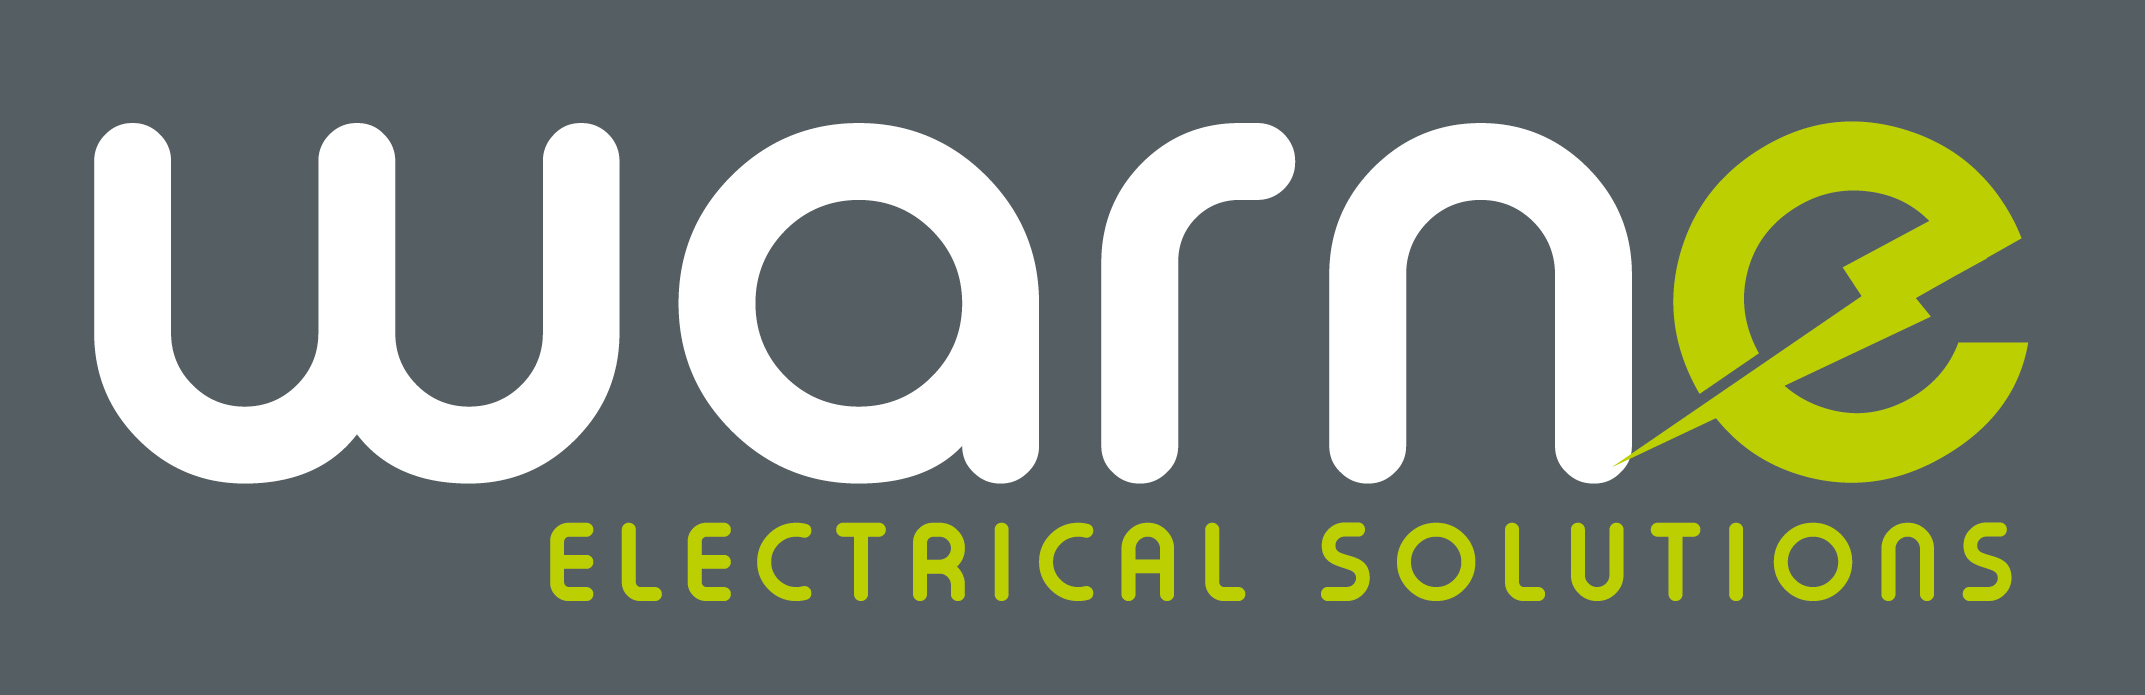 WARNE ELECTRICAL SOLUTIONS: LOGO IN WHITE